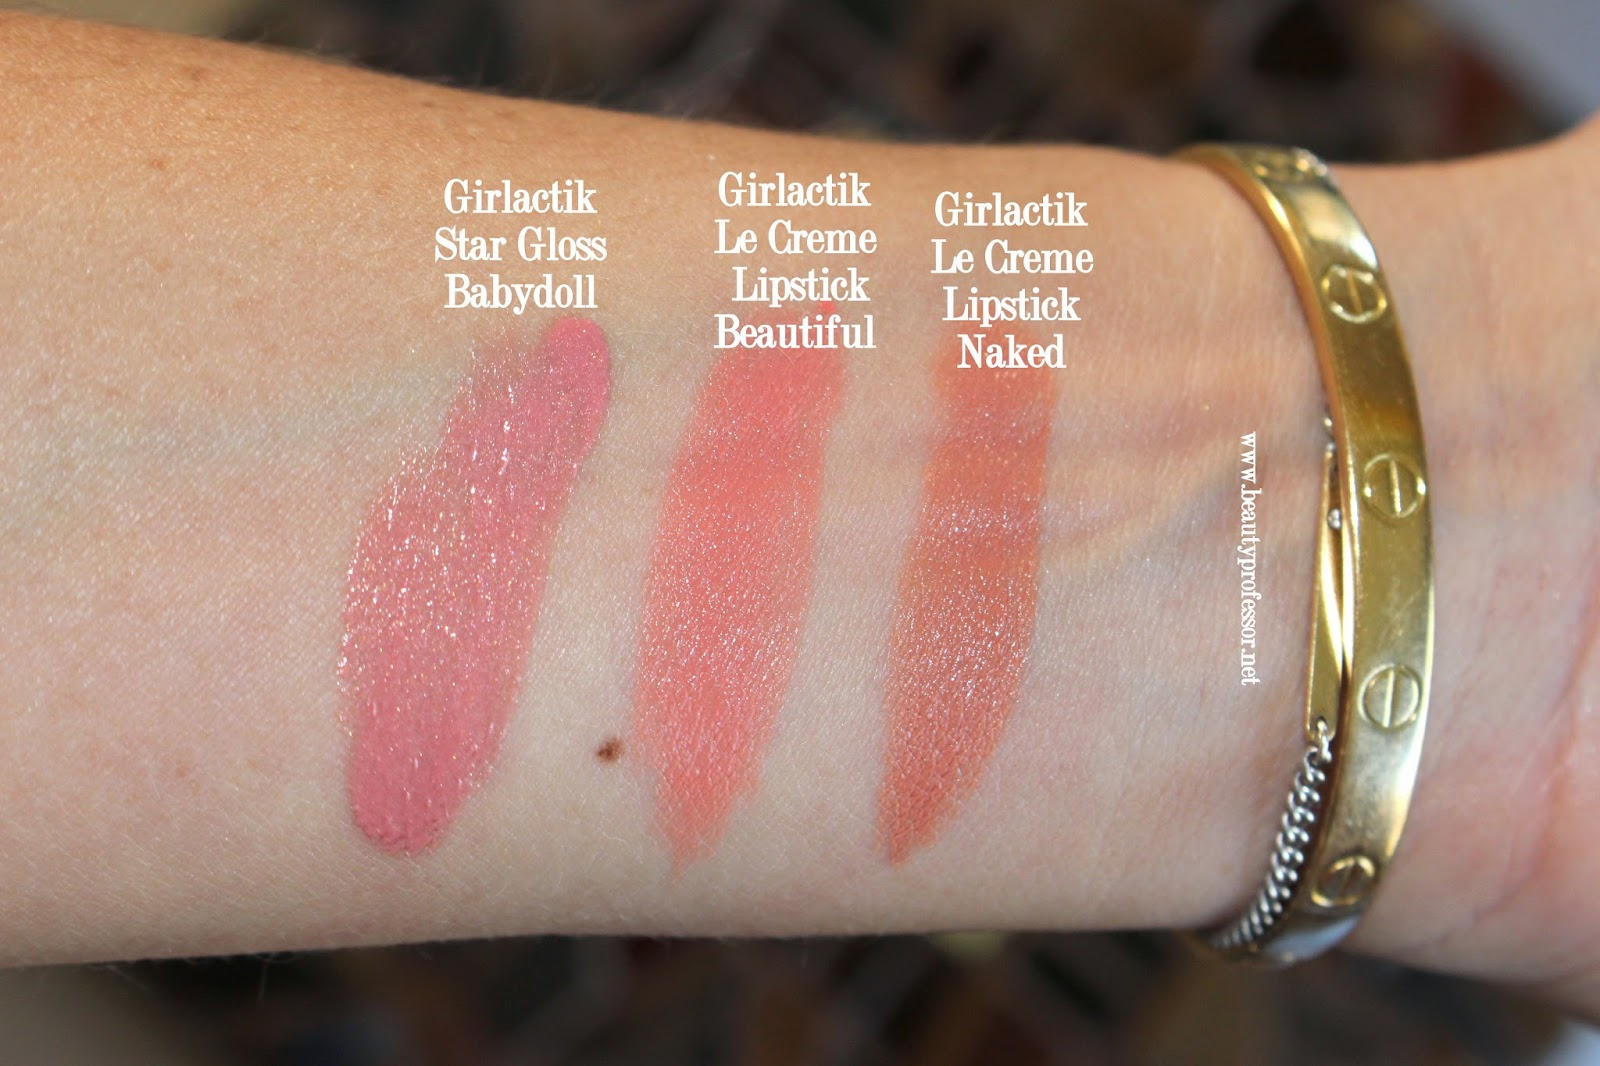 Girlactik Beautiful Naked Babydoll swatches